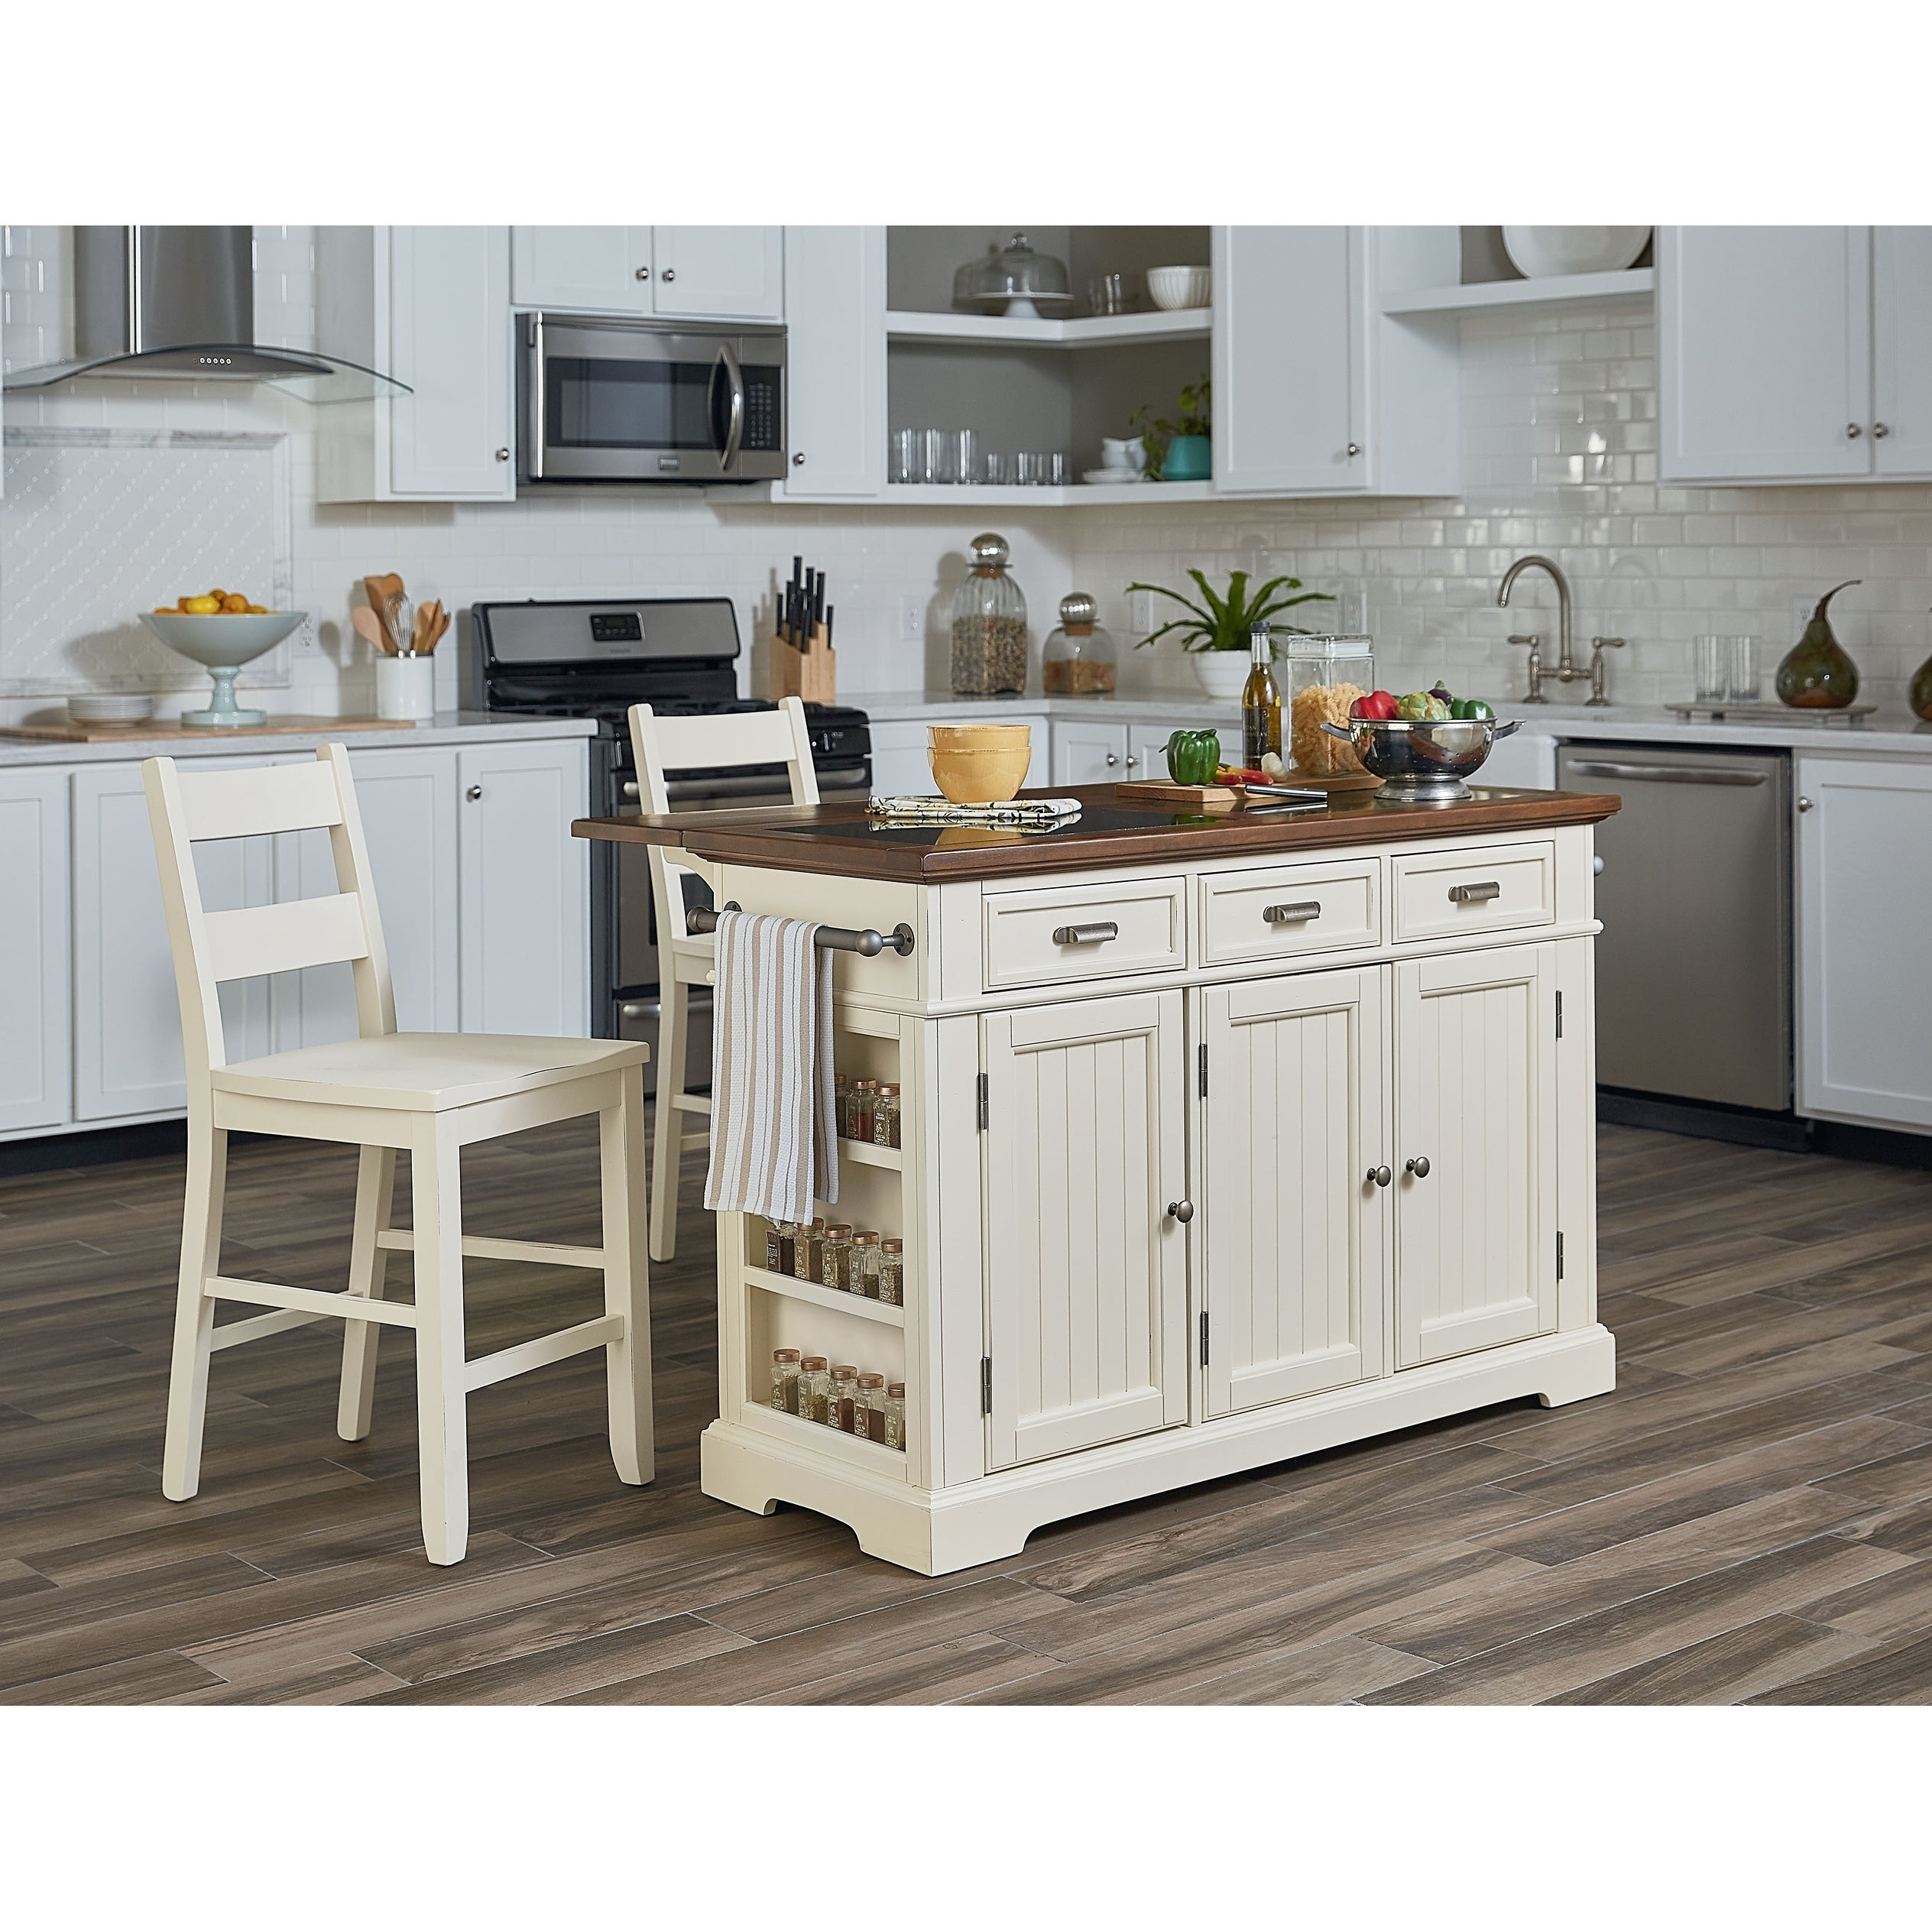 Shop Kitchen Island With Granite Inlay Top And Two Matching Stools